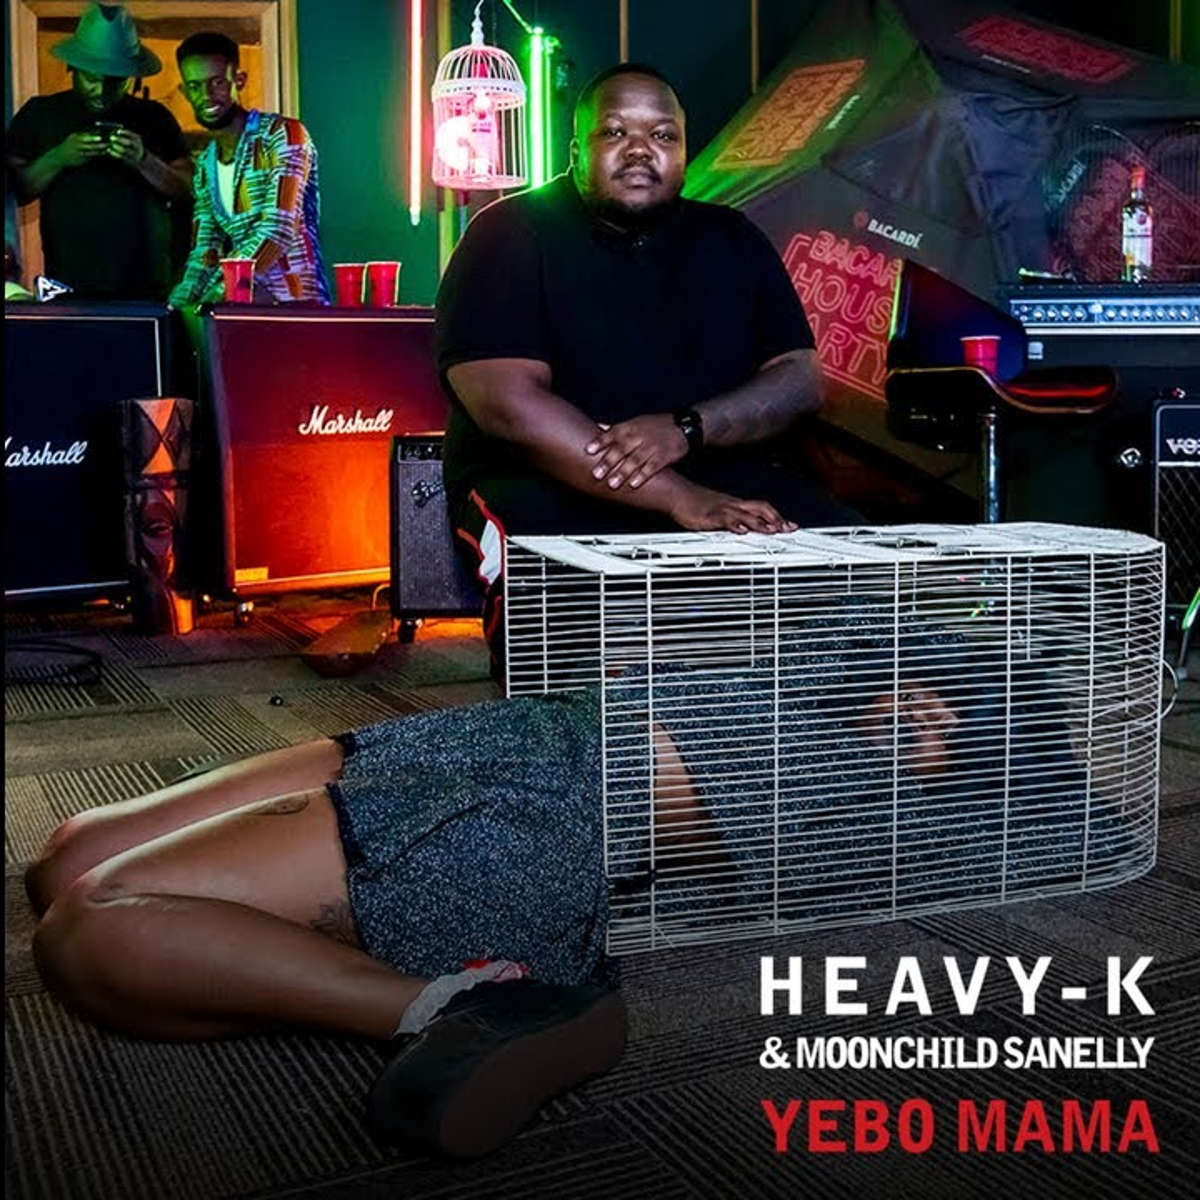 Heavy K & Moonchild Sanelly - Yebo Mama